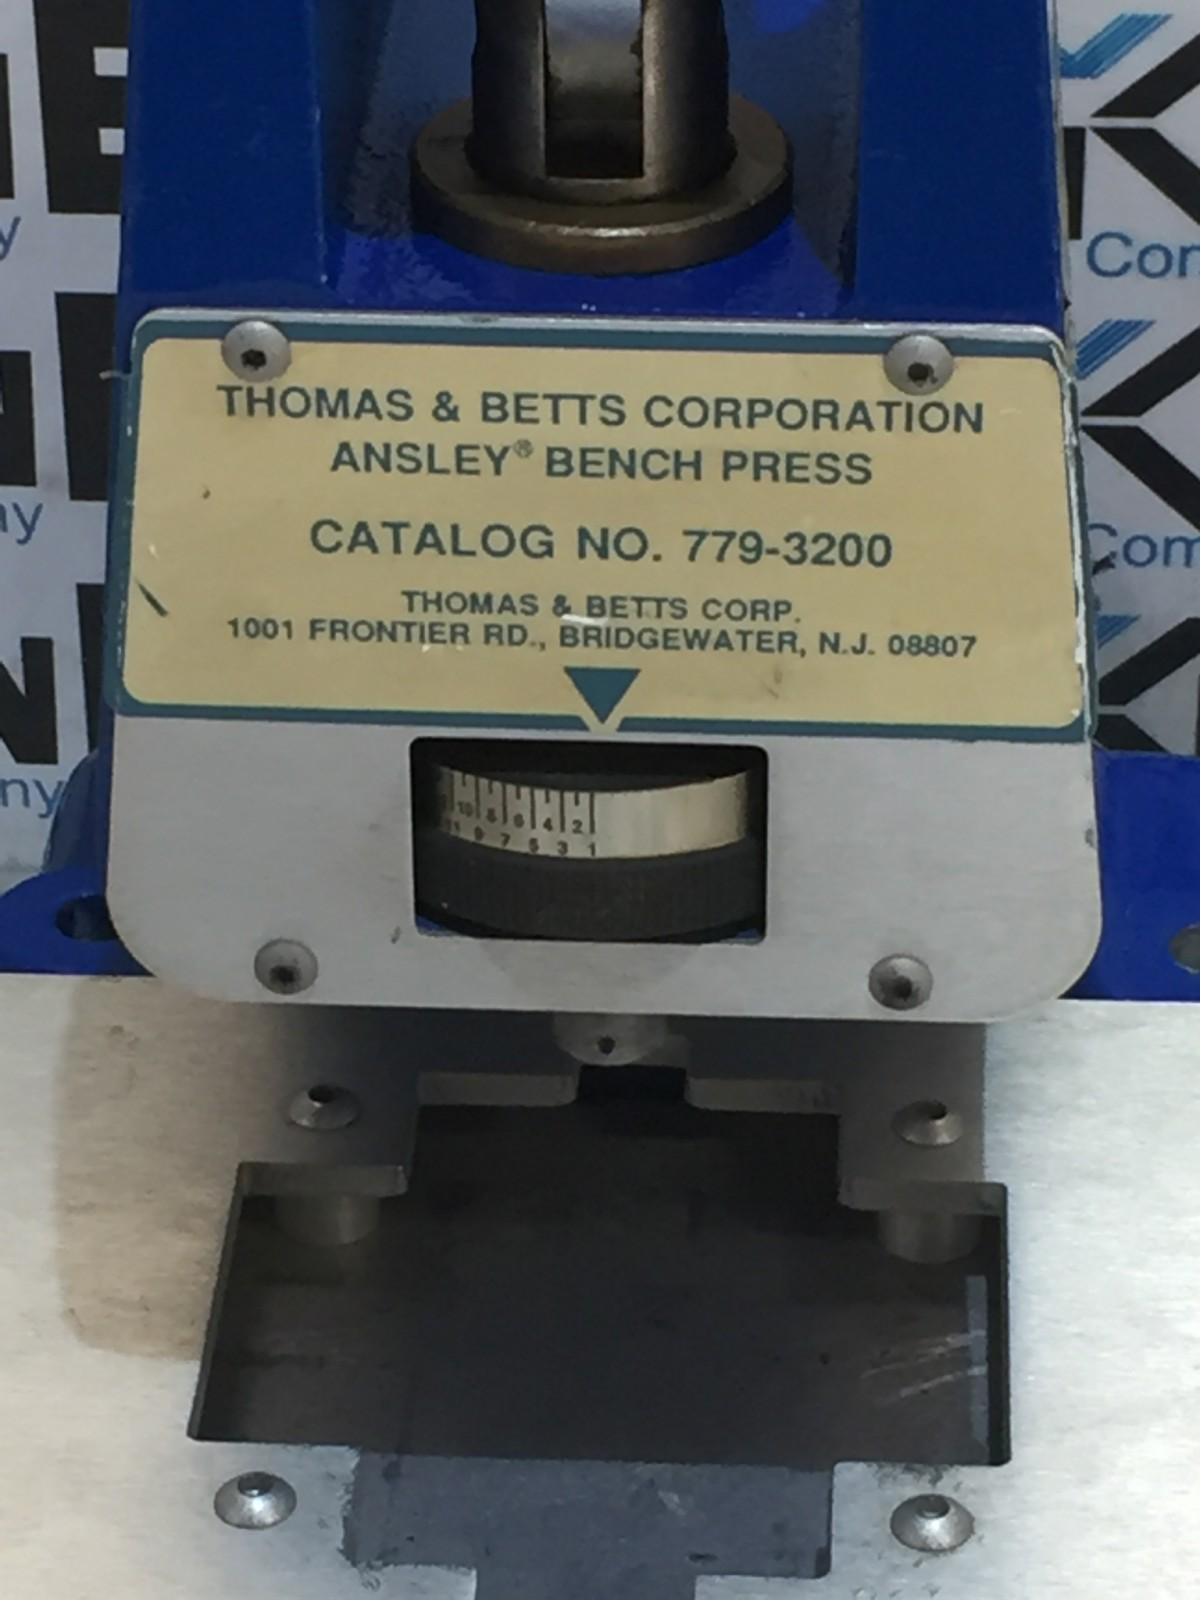 THOMAS & BETTS 779-3200 BENCH PRESS